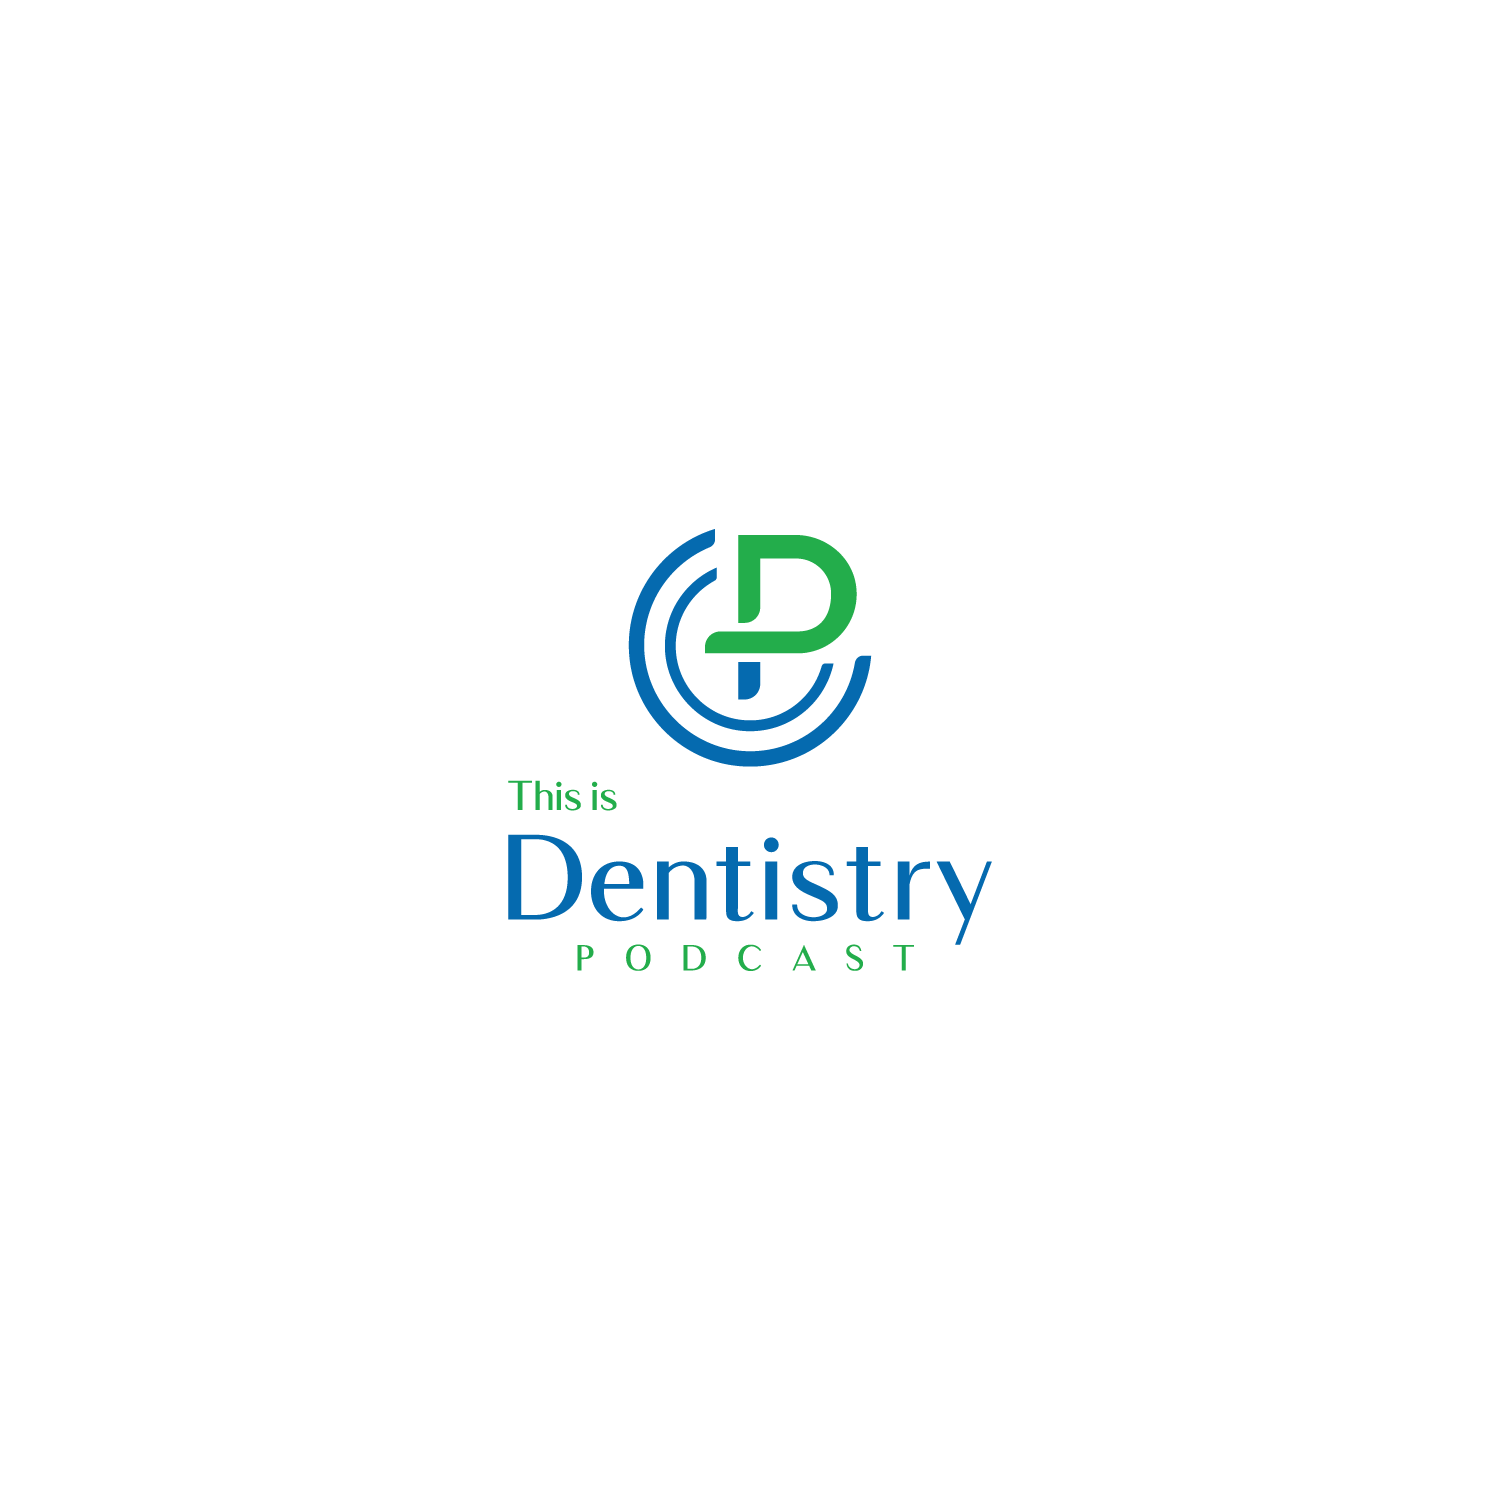 Podcast Logo for an Audience of Dentists